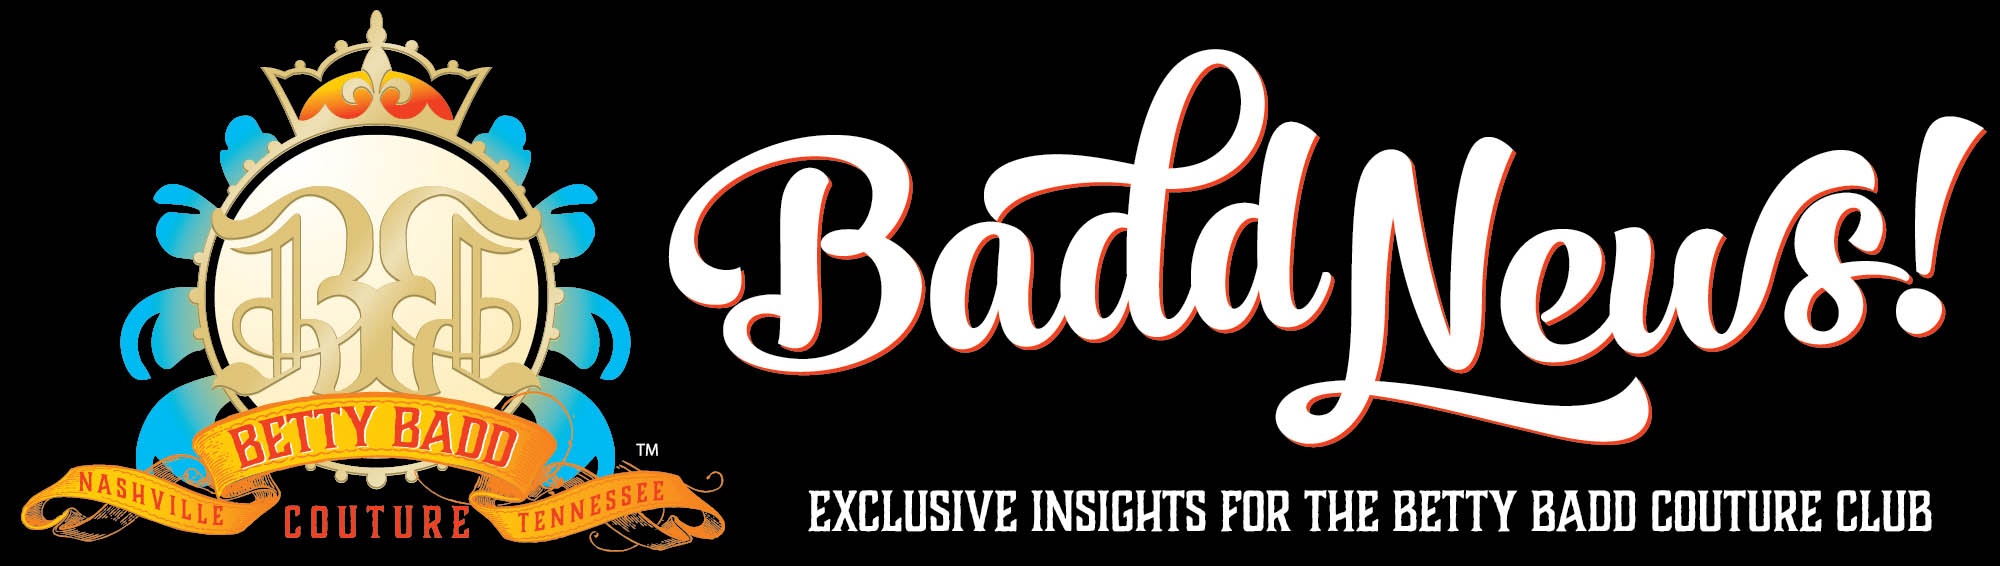 Sign up for Badd News - the exclusive email newsletter from Betty Badd Couture